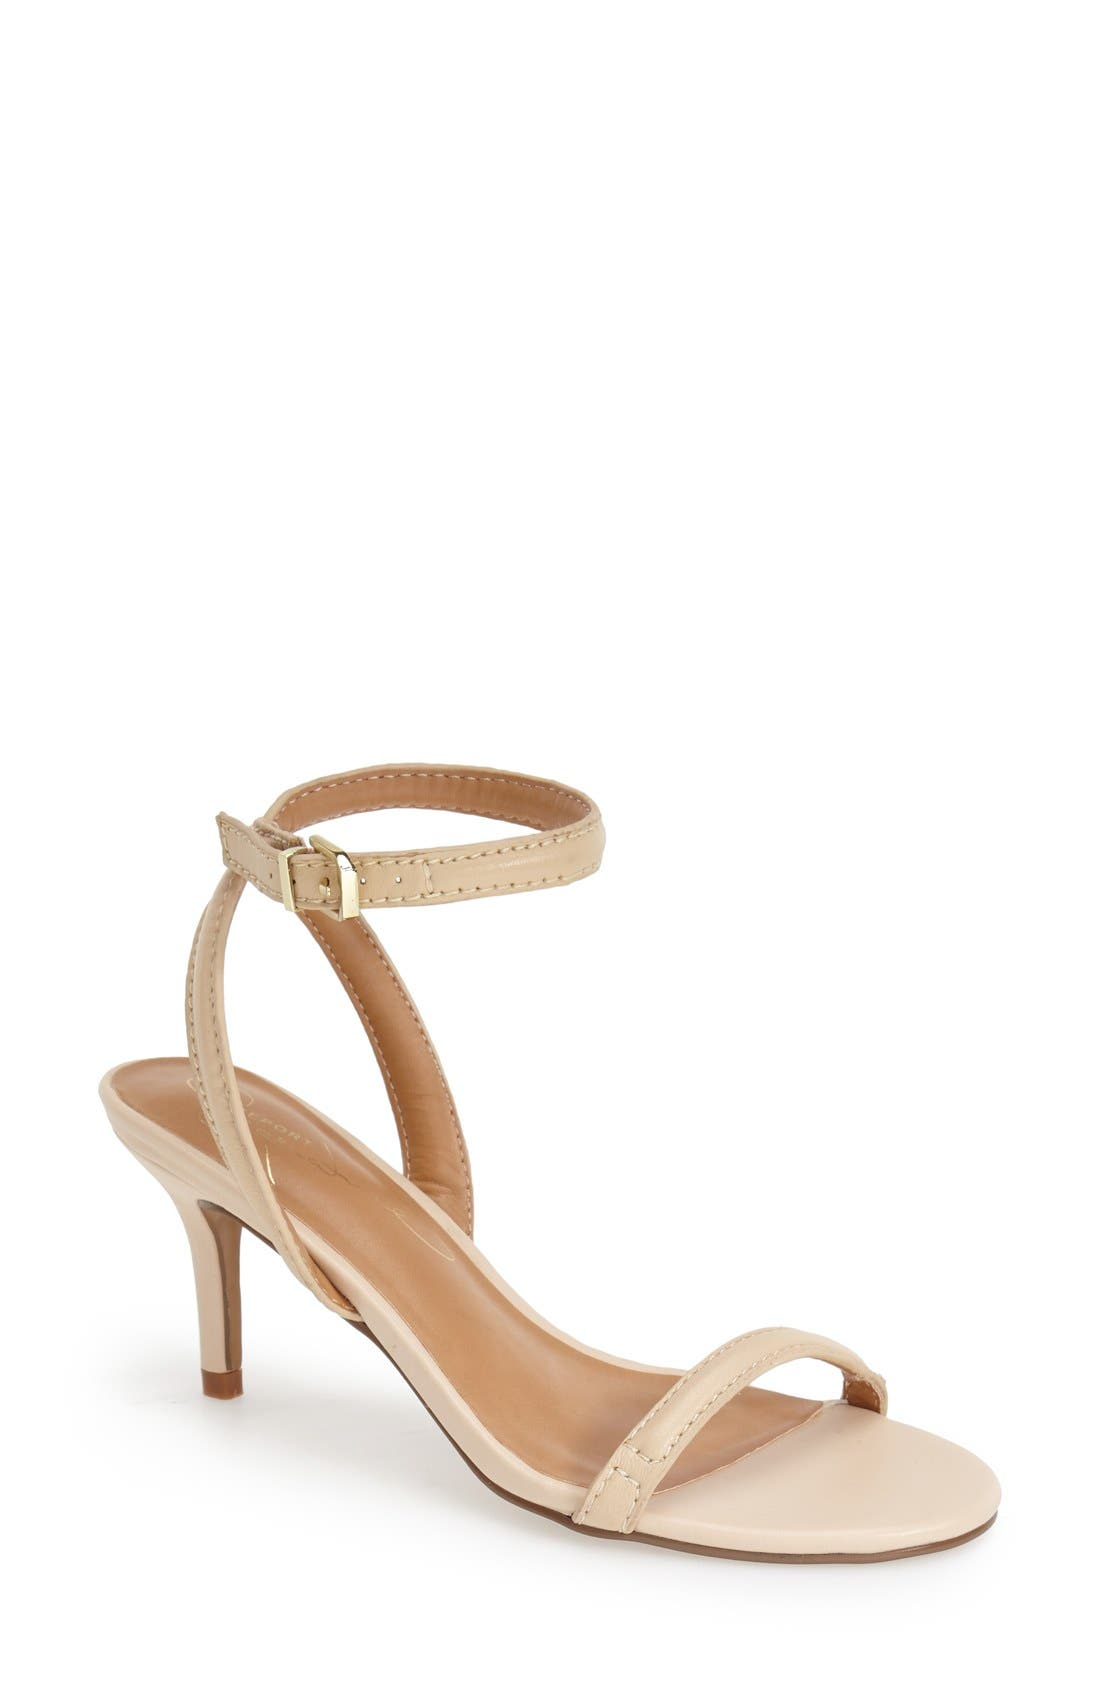 Alternate Image 1 Selected - REPORT 'Signature Neely' Ankle Strap Sandal (Women)